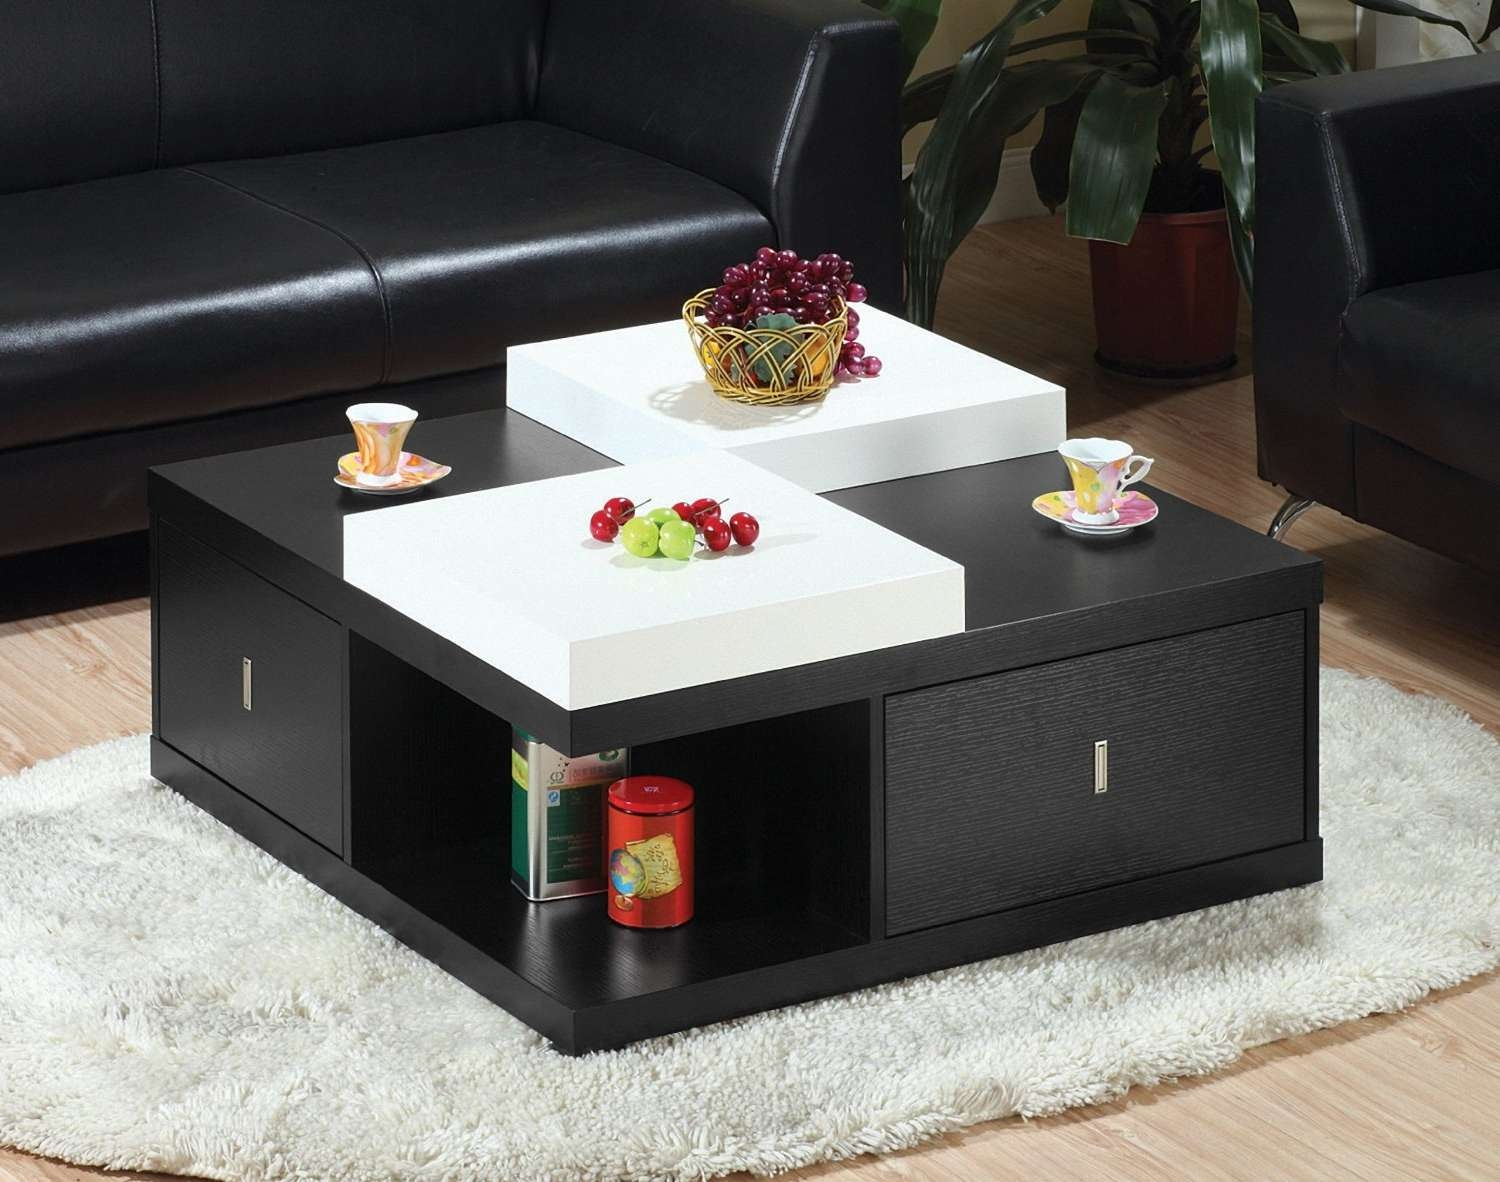 Newest Square Coffee Tables With Drawers Within Coffee Table: Breathtaking Large Square Coffee Table Decorating (View 7 of 20)